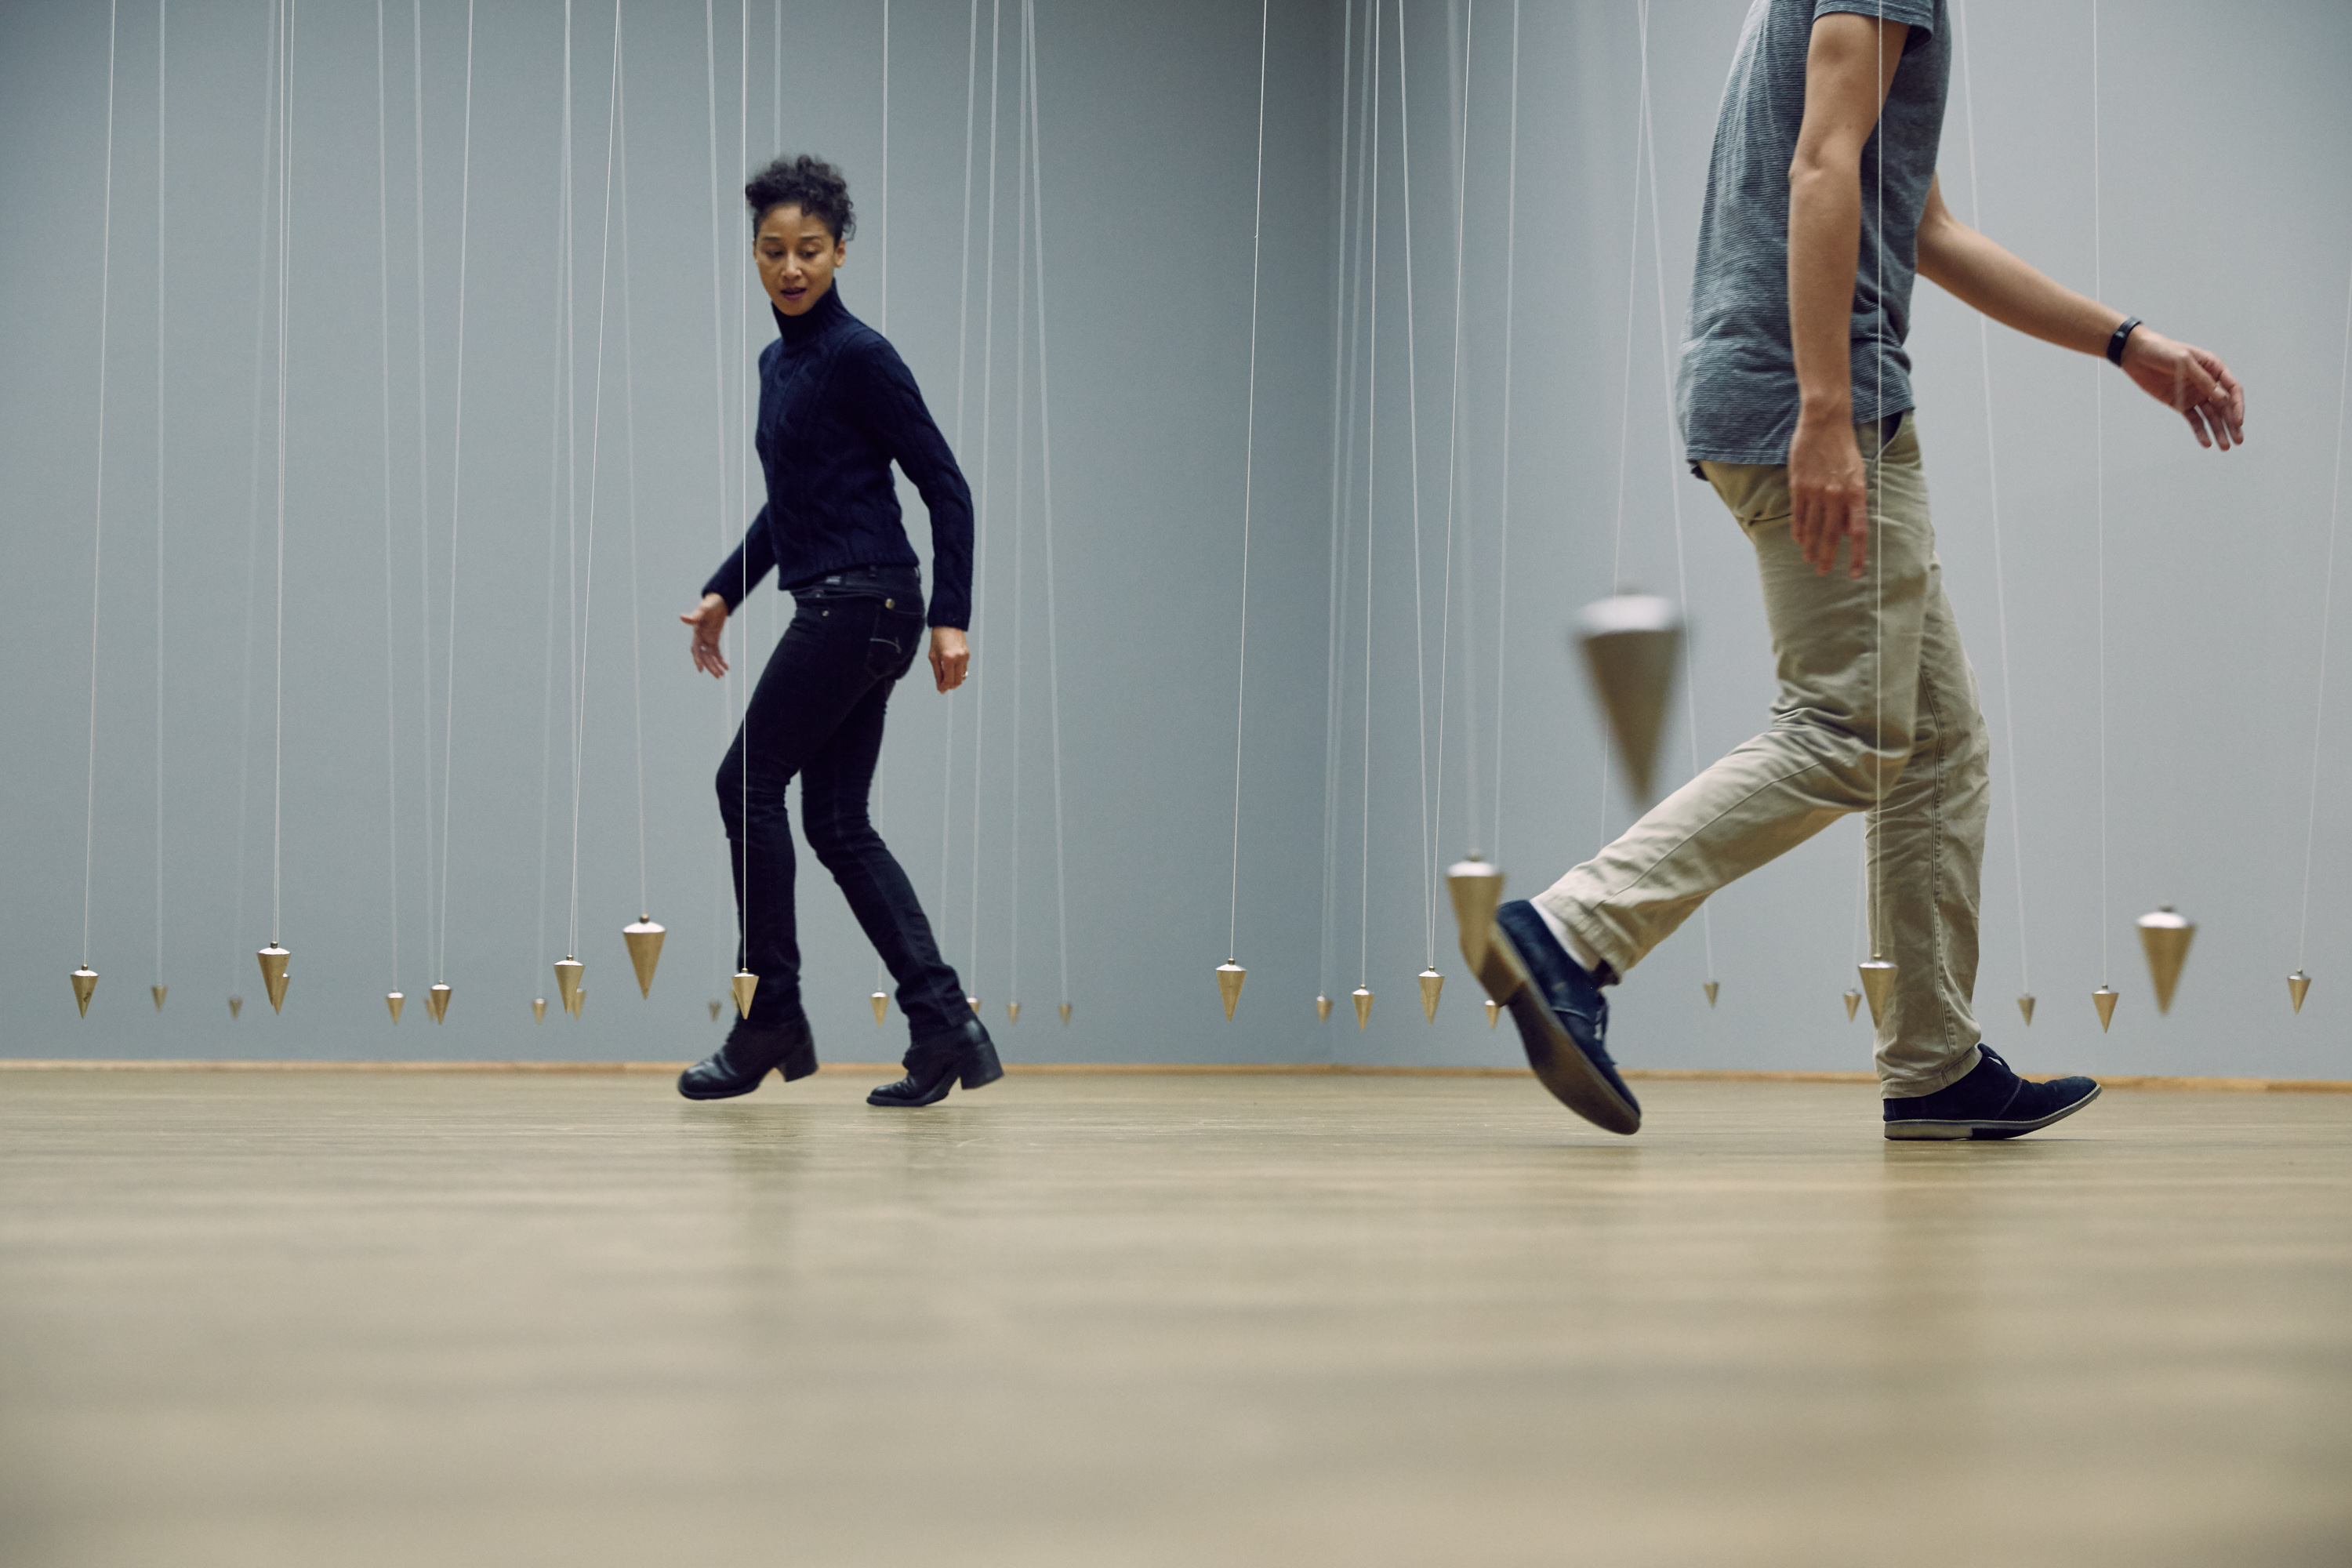 Nowhere and Everywhere at the Same Time by William Forsythe